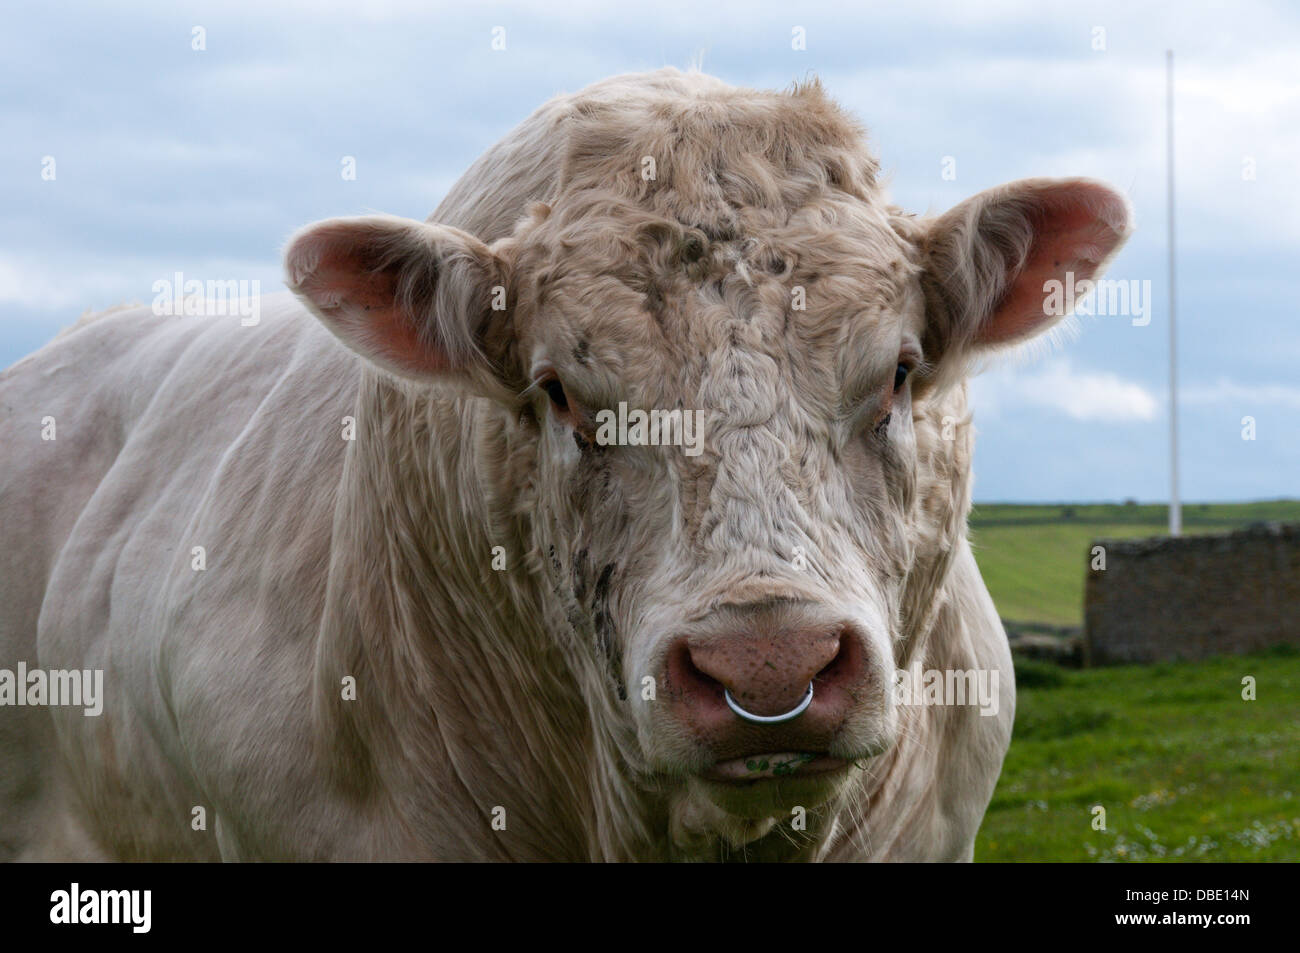 Bull Ring Nose Stock Photos Bull Ring Nose Stock Images Alamy